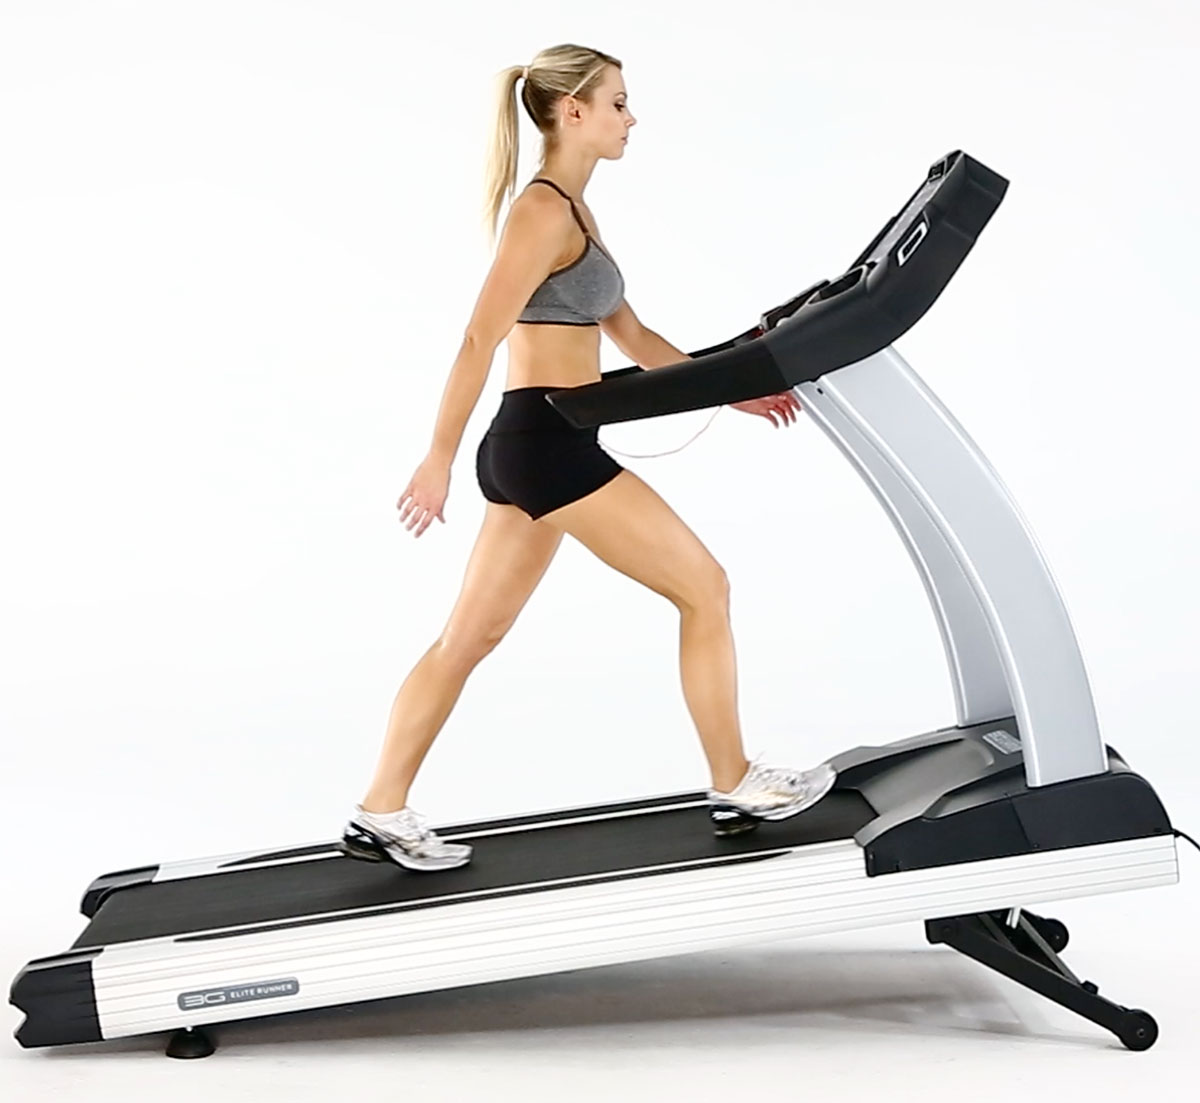 Life Fitness Treadmill Desk